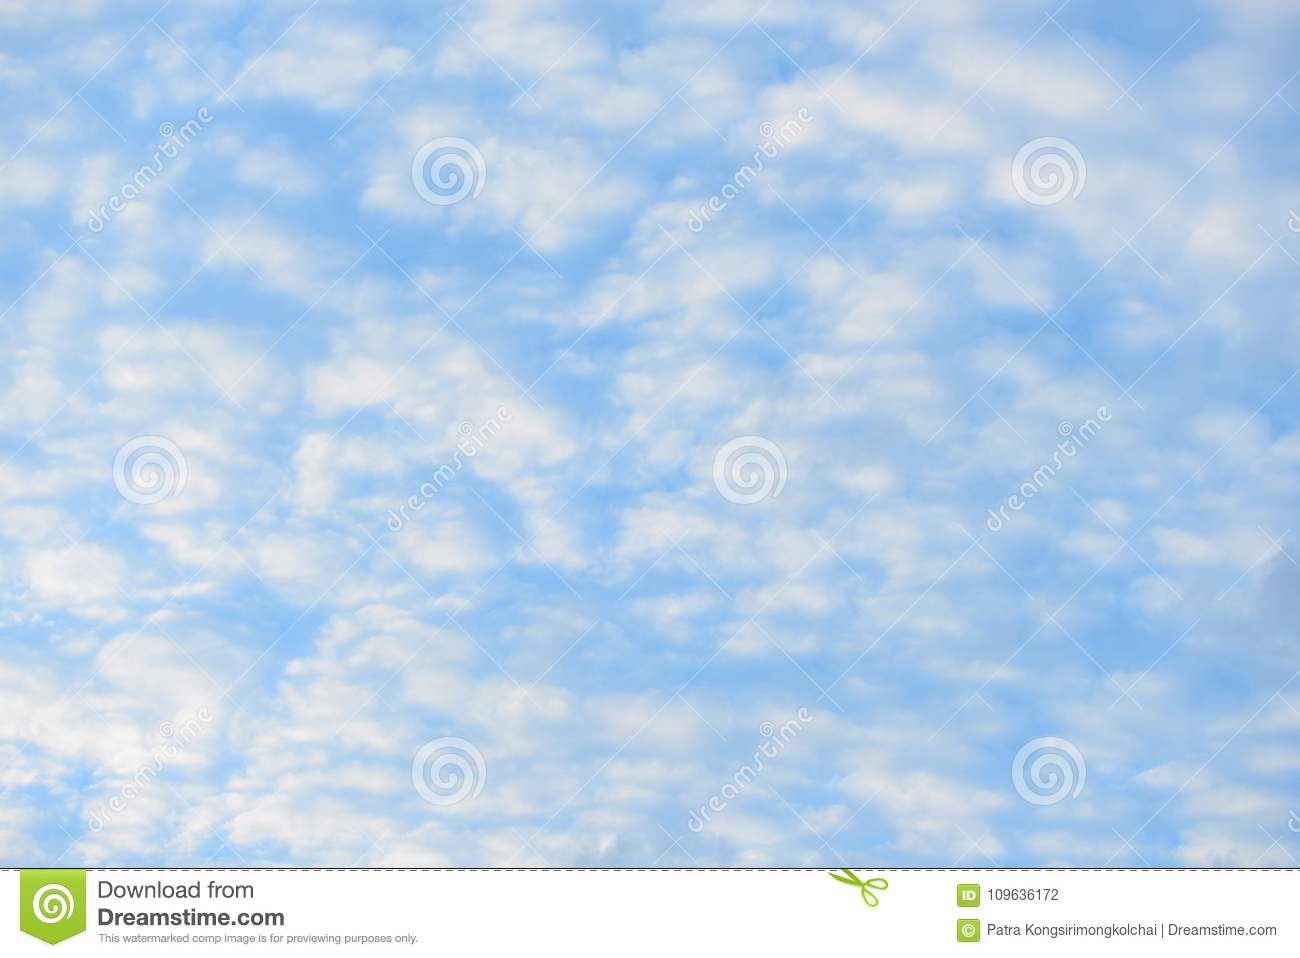 Blue sky with fluffy clouds, close-up background